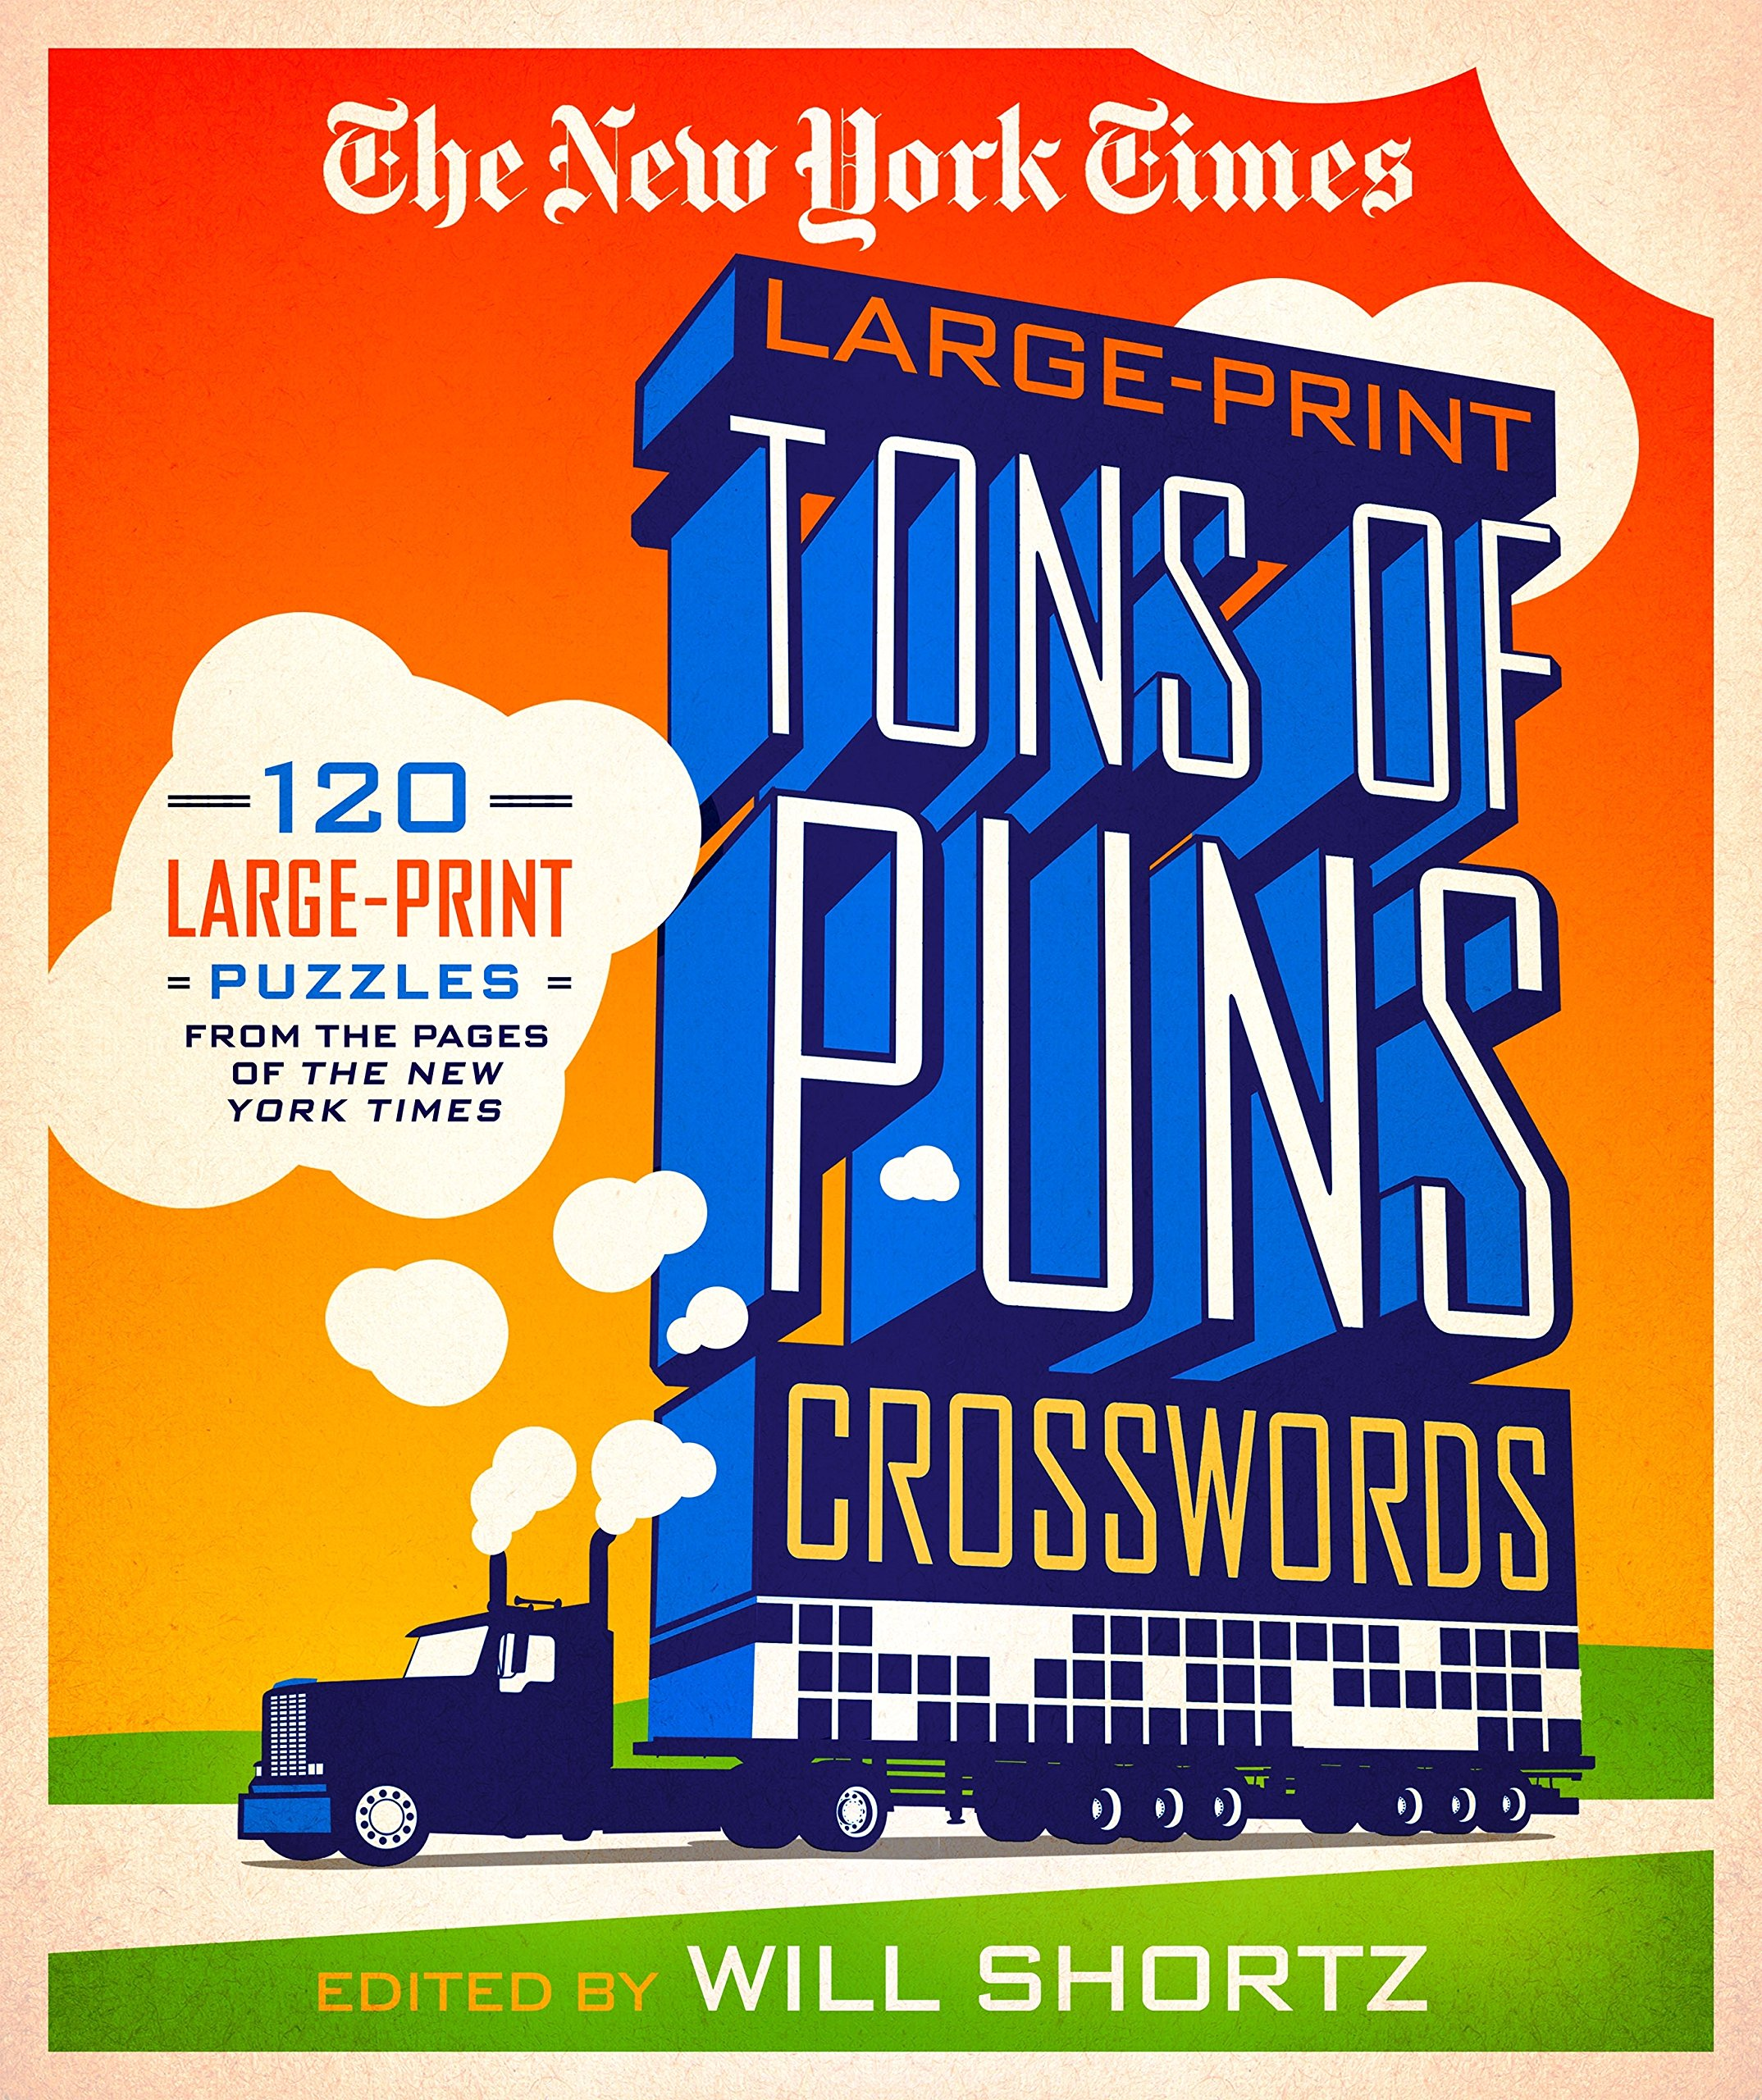 Download The New York Times Large-Print Tons of Puns Crosswords: 120 Large-Print Puzzles from the Pages of the New York Times pdf epub